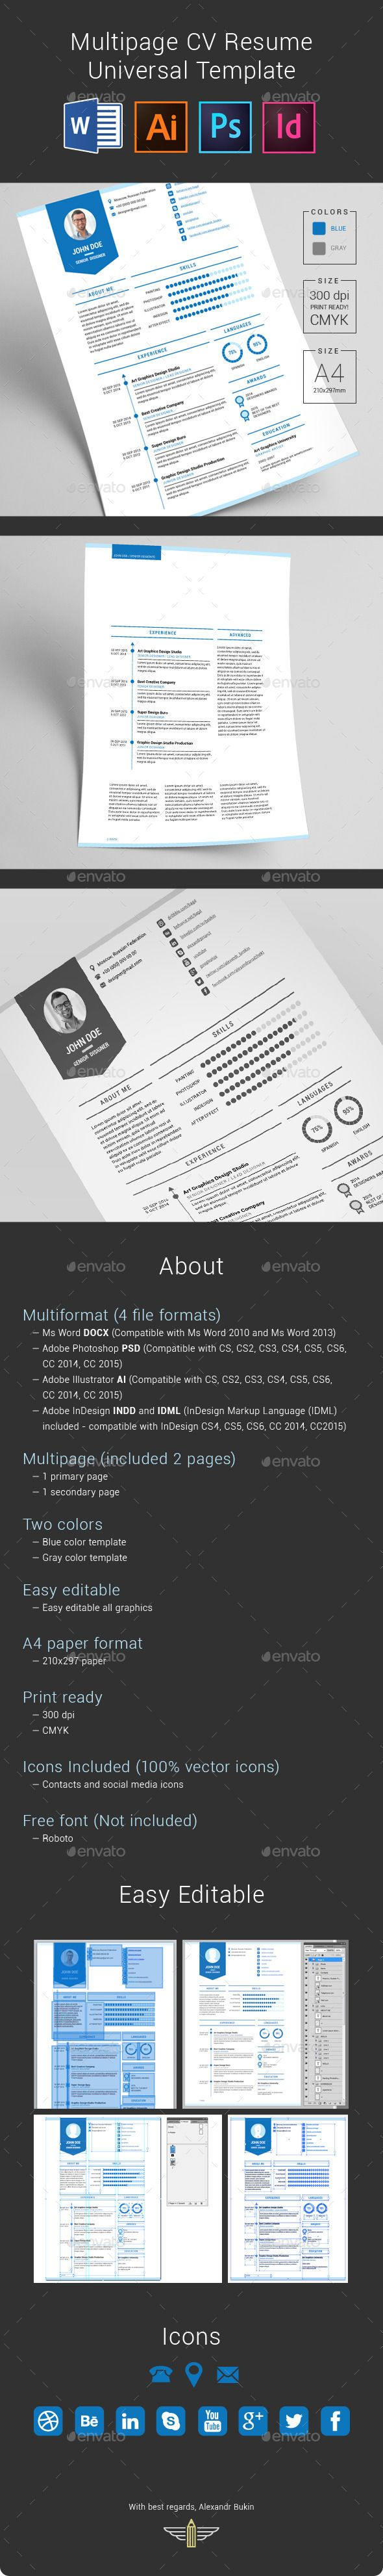 multipage cv resume universal template by bagd multiformat